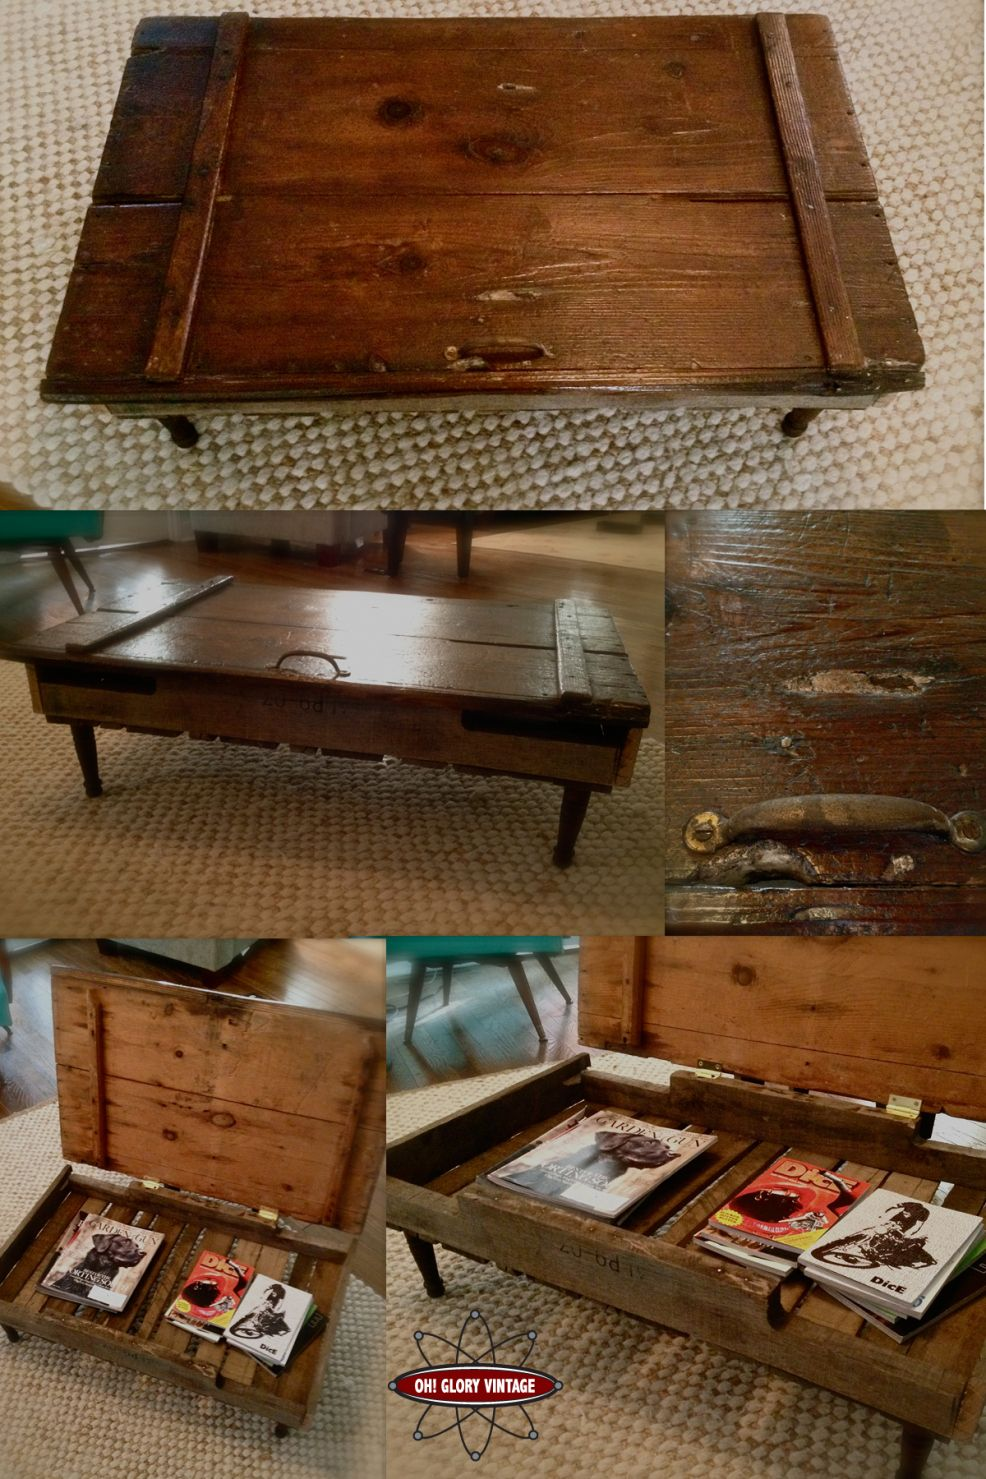 Barn Door Coffee Table. I like there is some more space. But I don't like the handle, it's not good for coffee table...